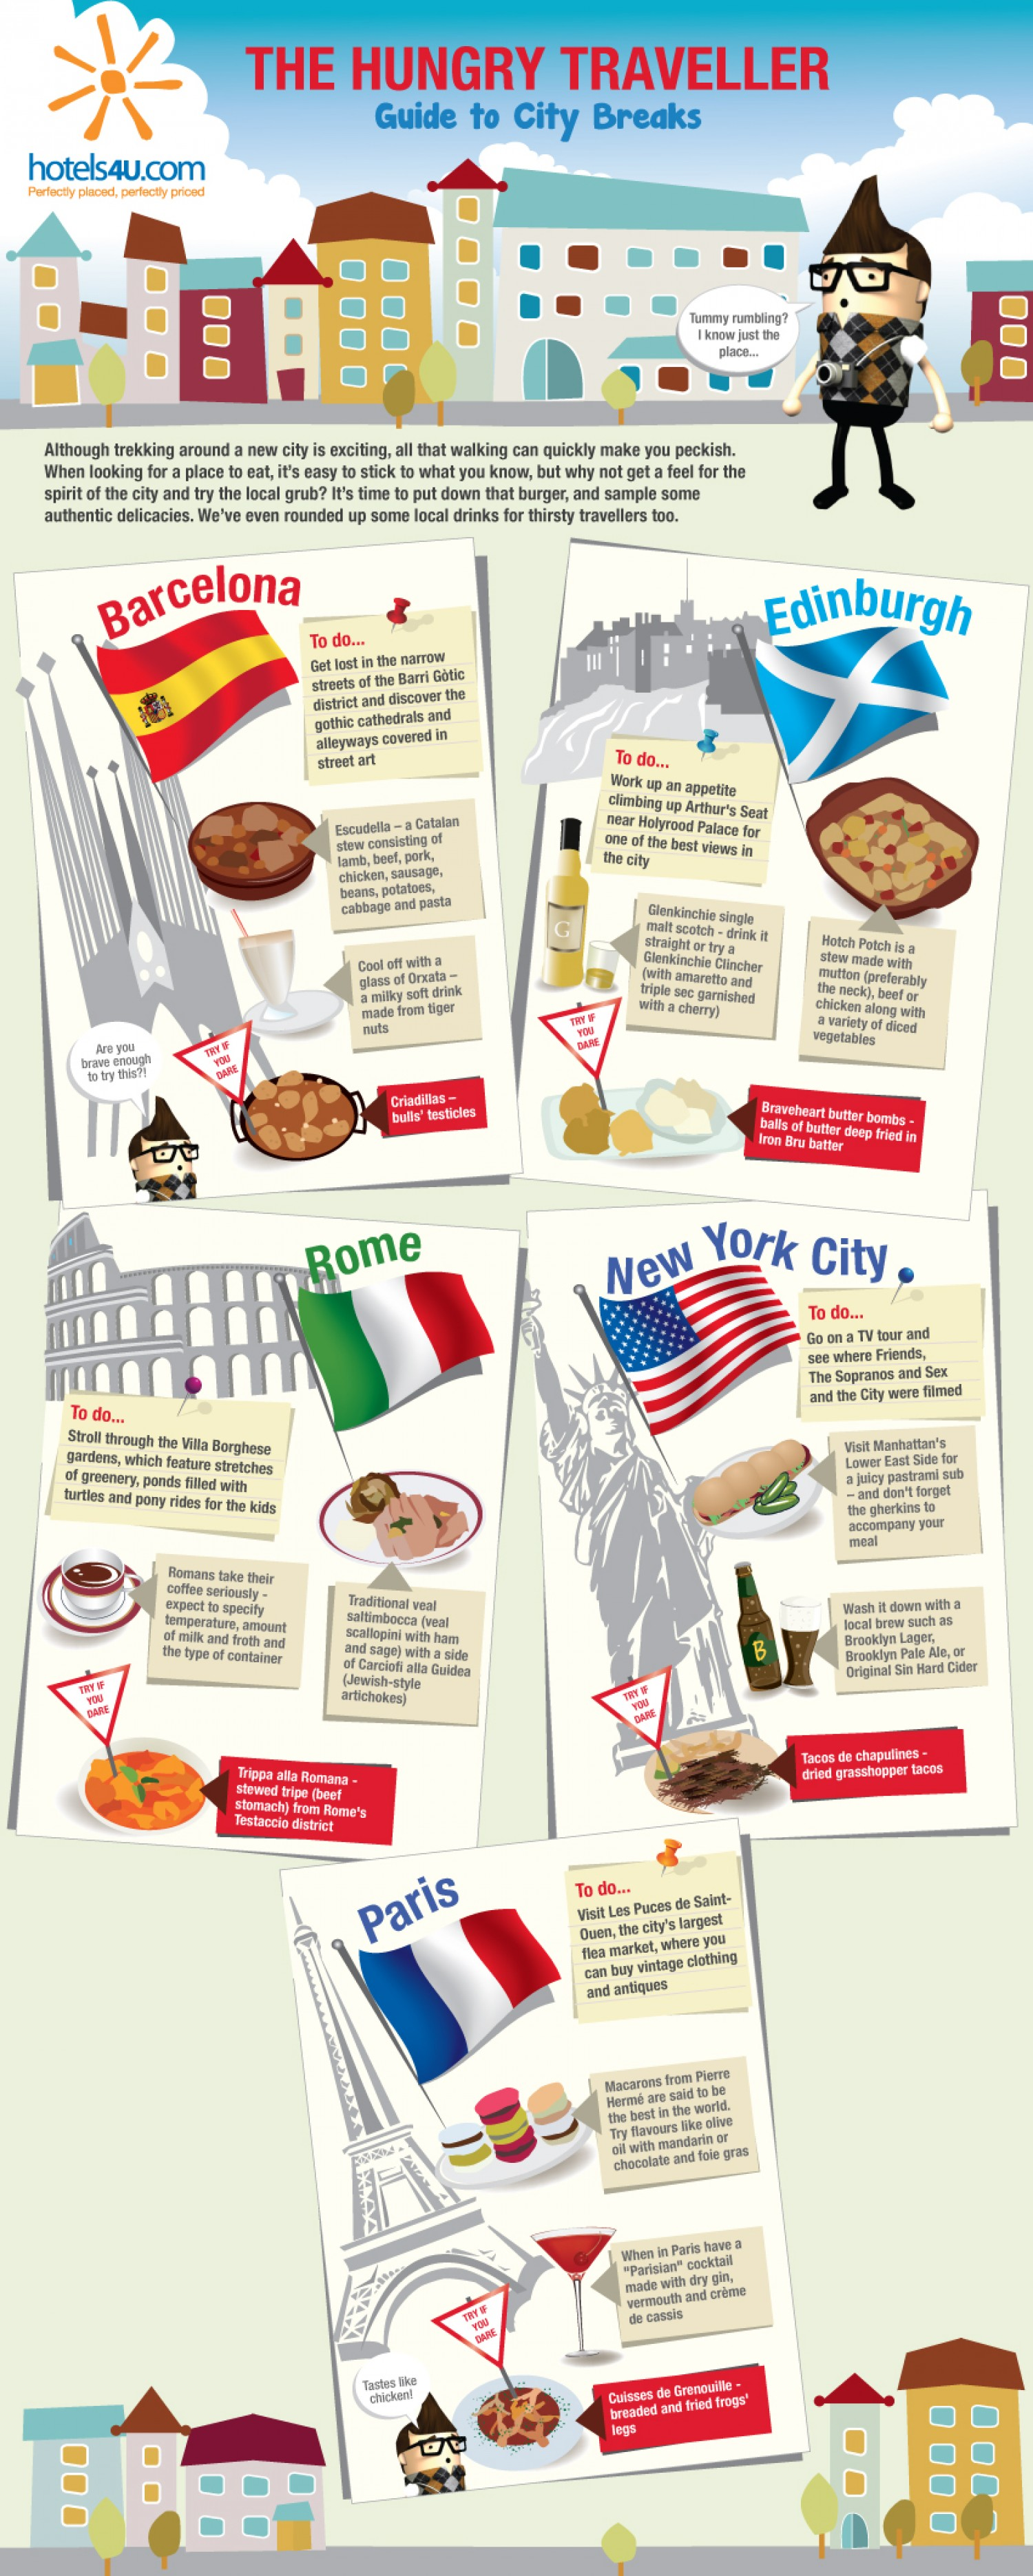 The Hungry Traveler Guide to City Breaks